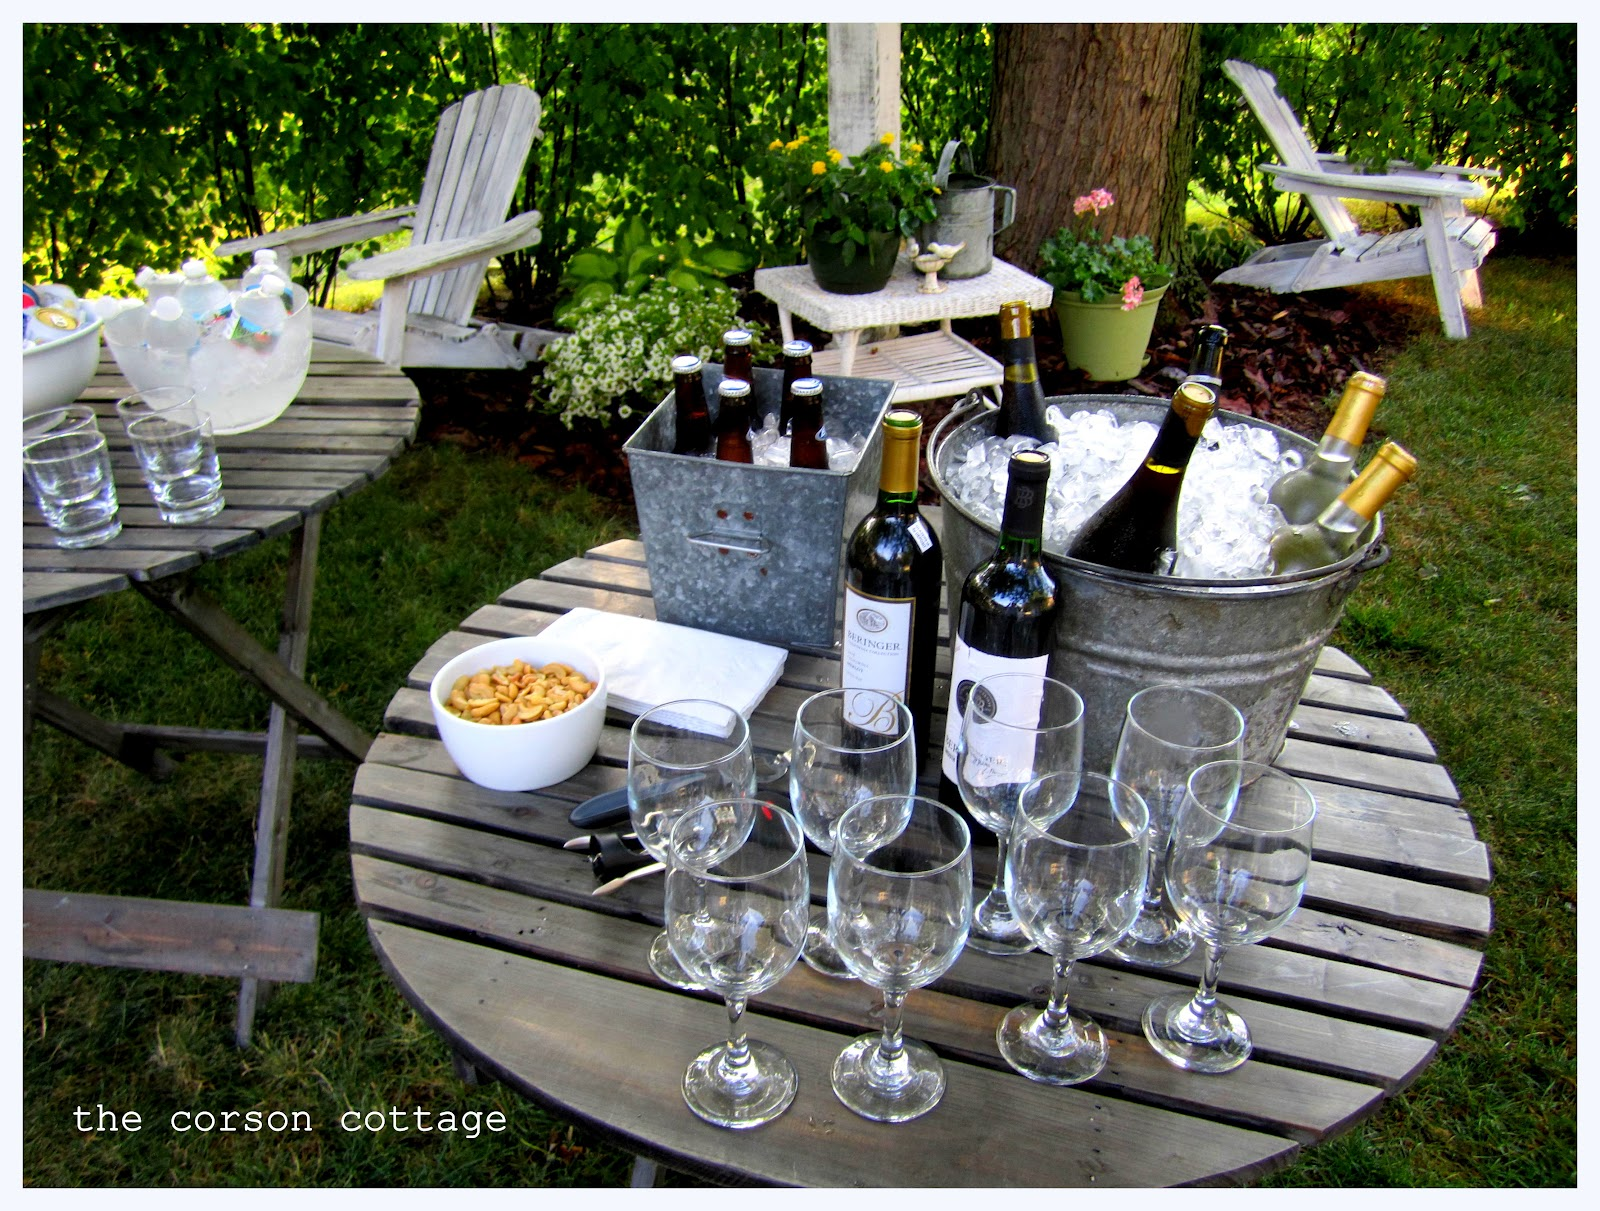 When We Originally Started To Plan The Party I Thought It Would Be A Great Idea Have Outdoors